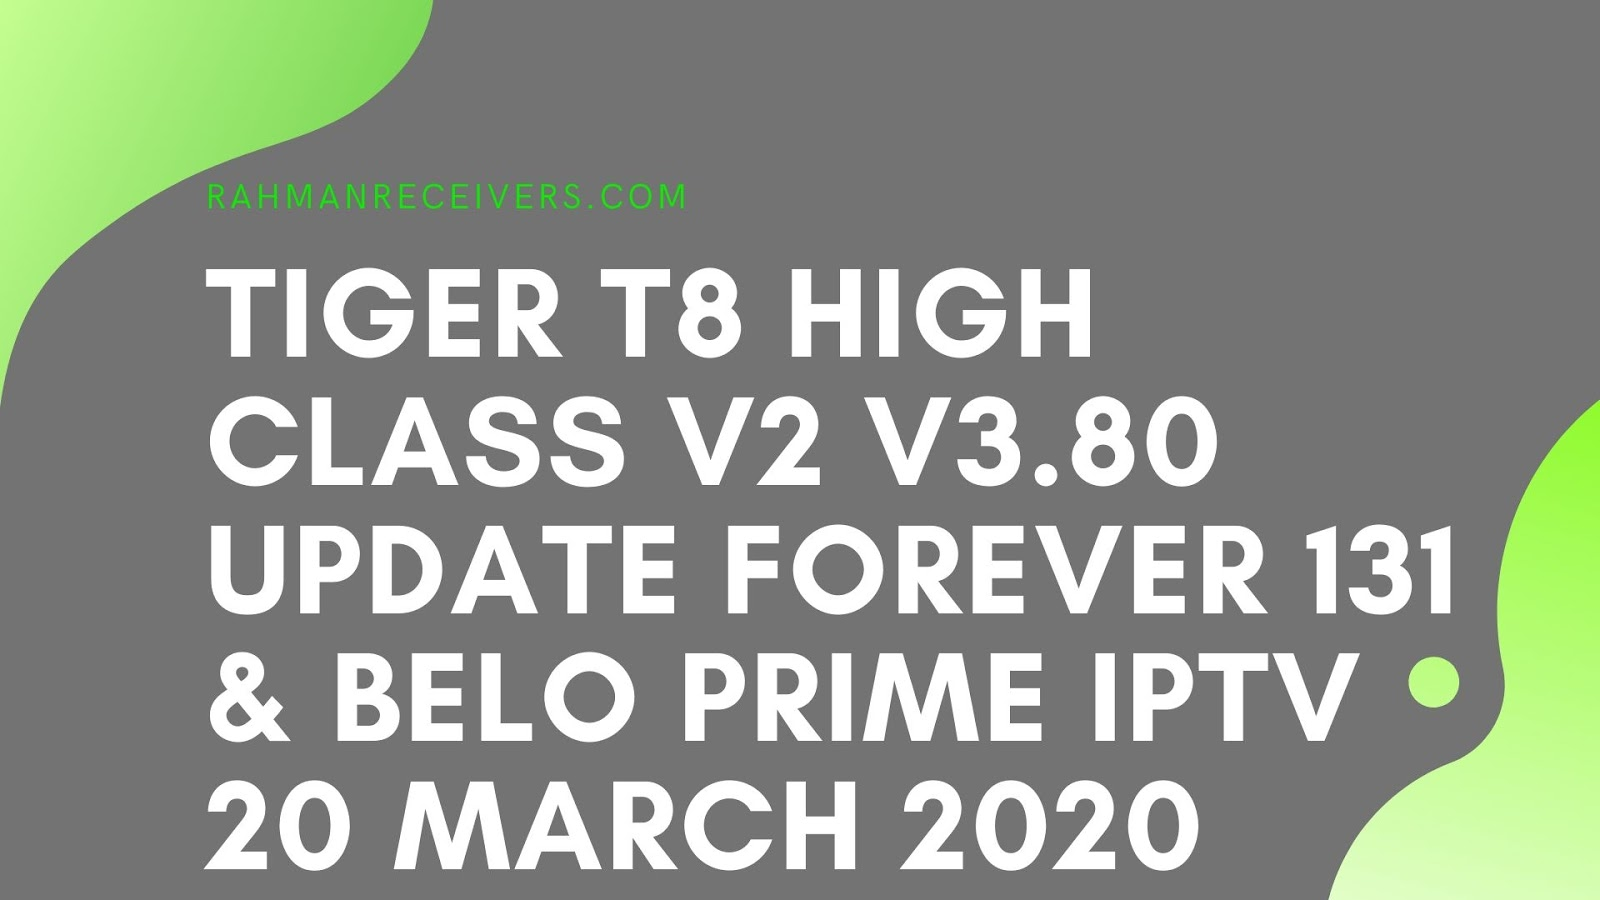 TIGER T8 HIGH CLASS V2 V3.80 UPDATE FOREVER 131 & BELO PRIME IPTV 20 MARCH 2020